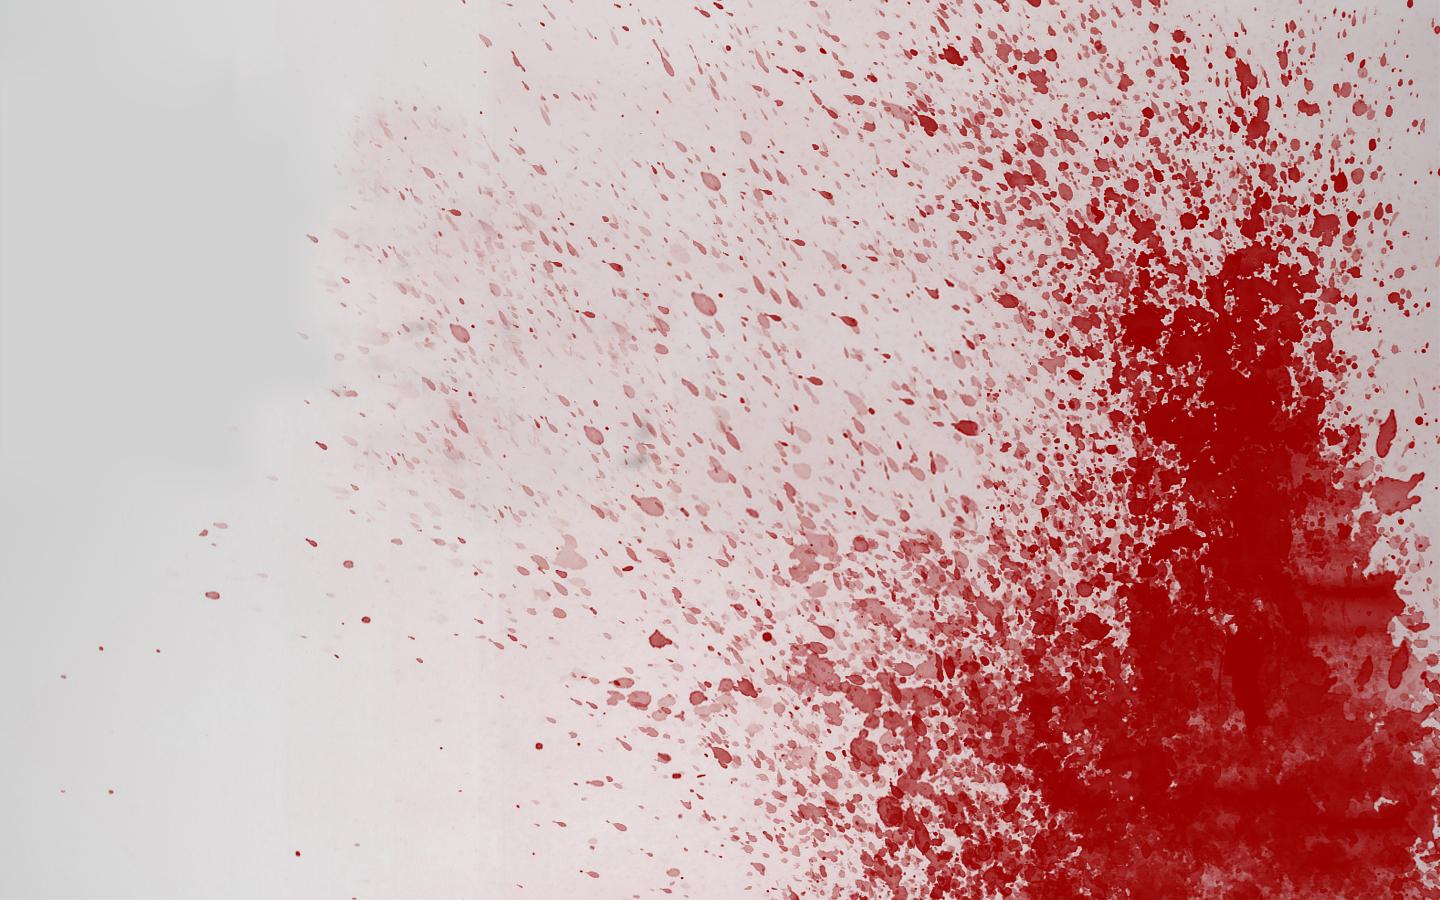 Blood splatter ppt background ppt backgrounds templates for Blood ppt templates free download